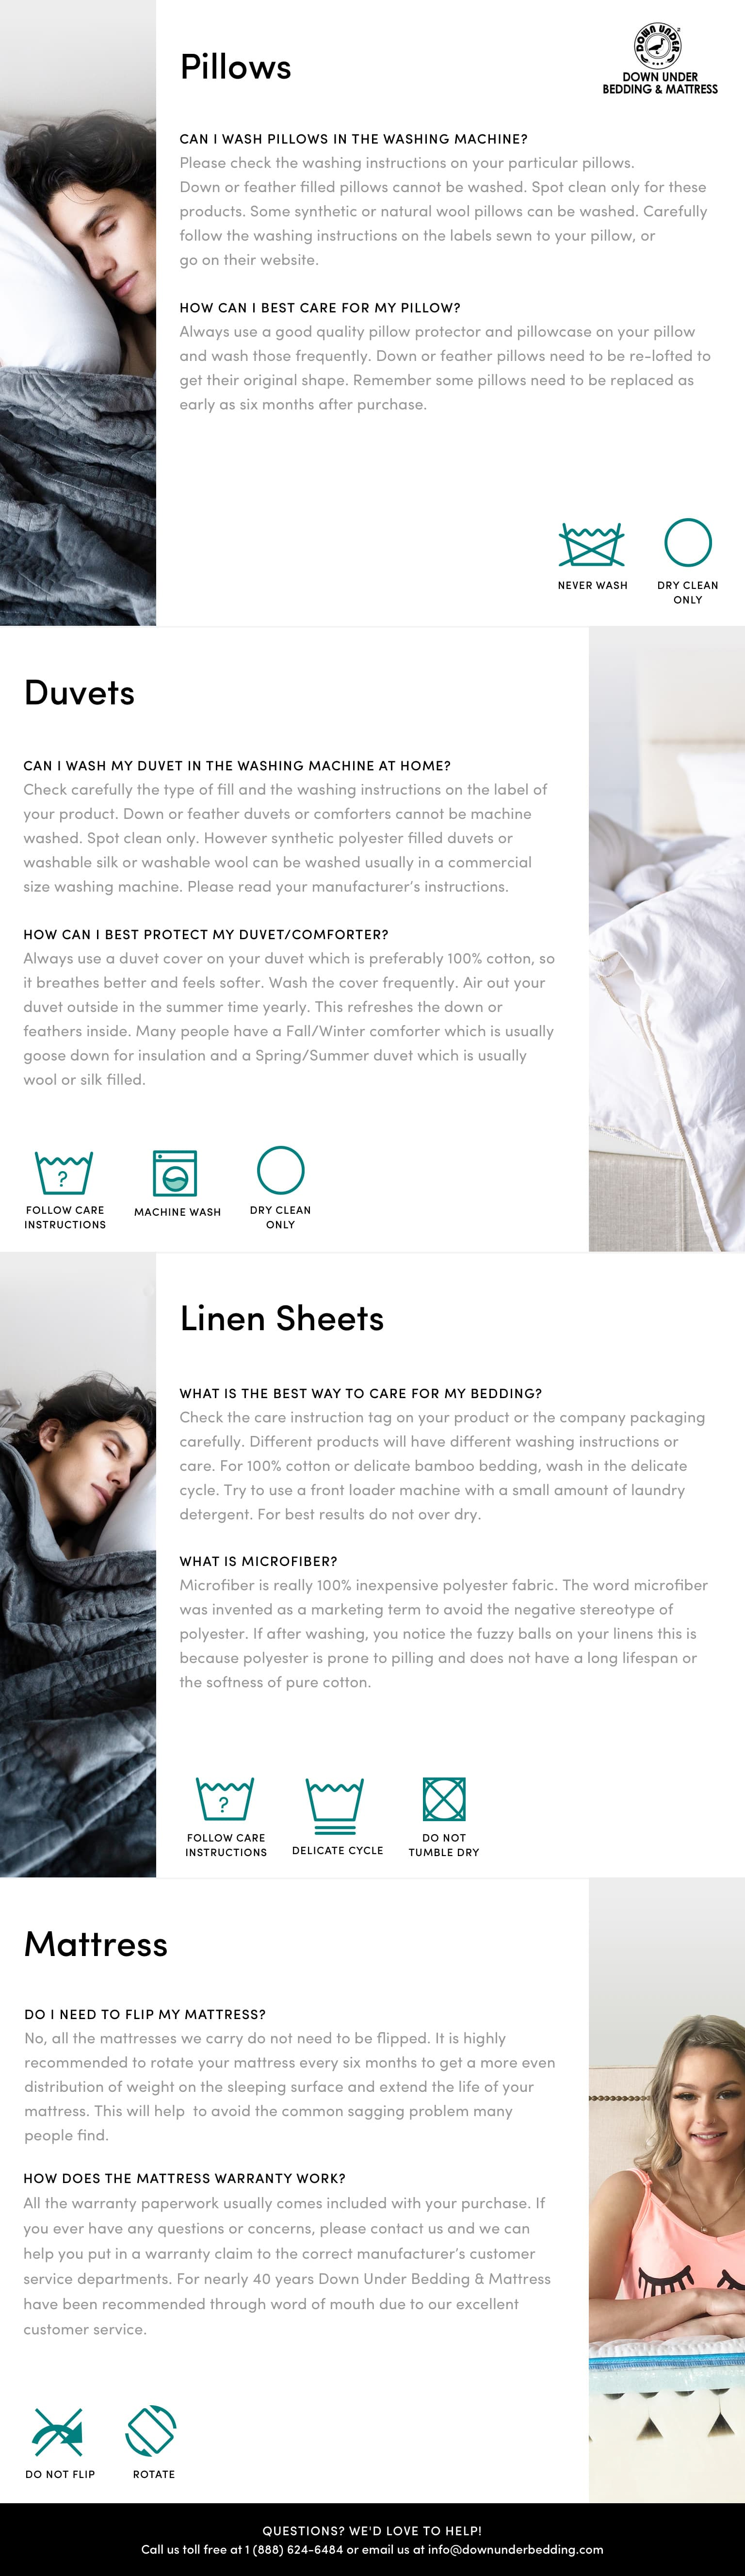 product care - pillows, mattresses and linens - down under bedding